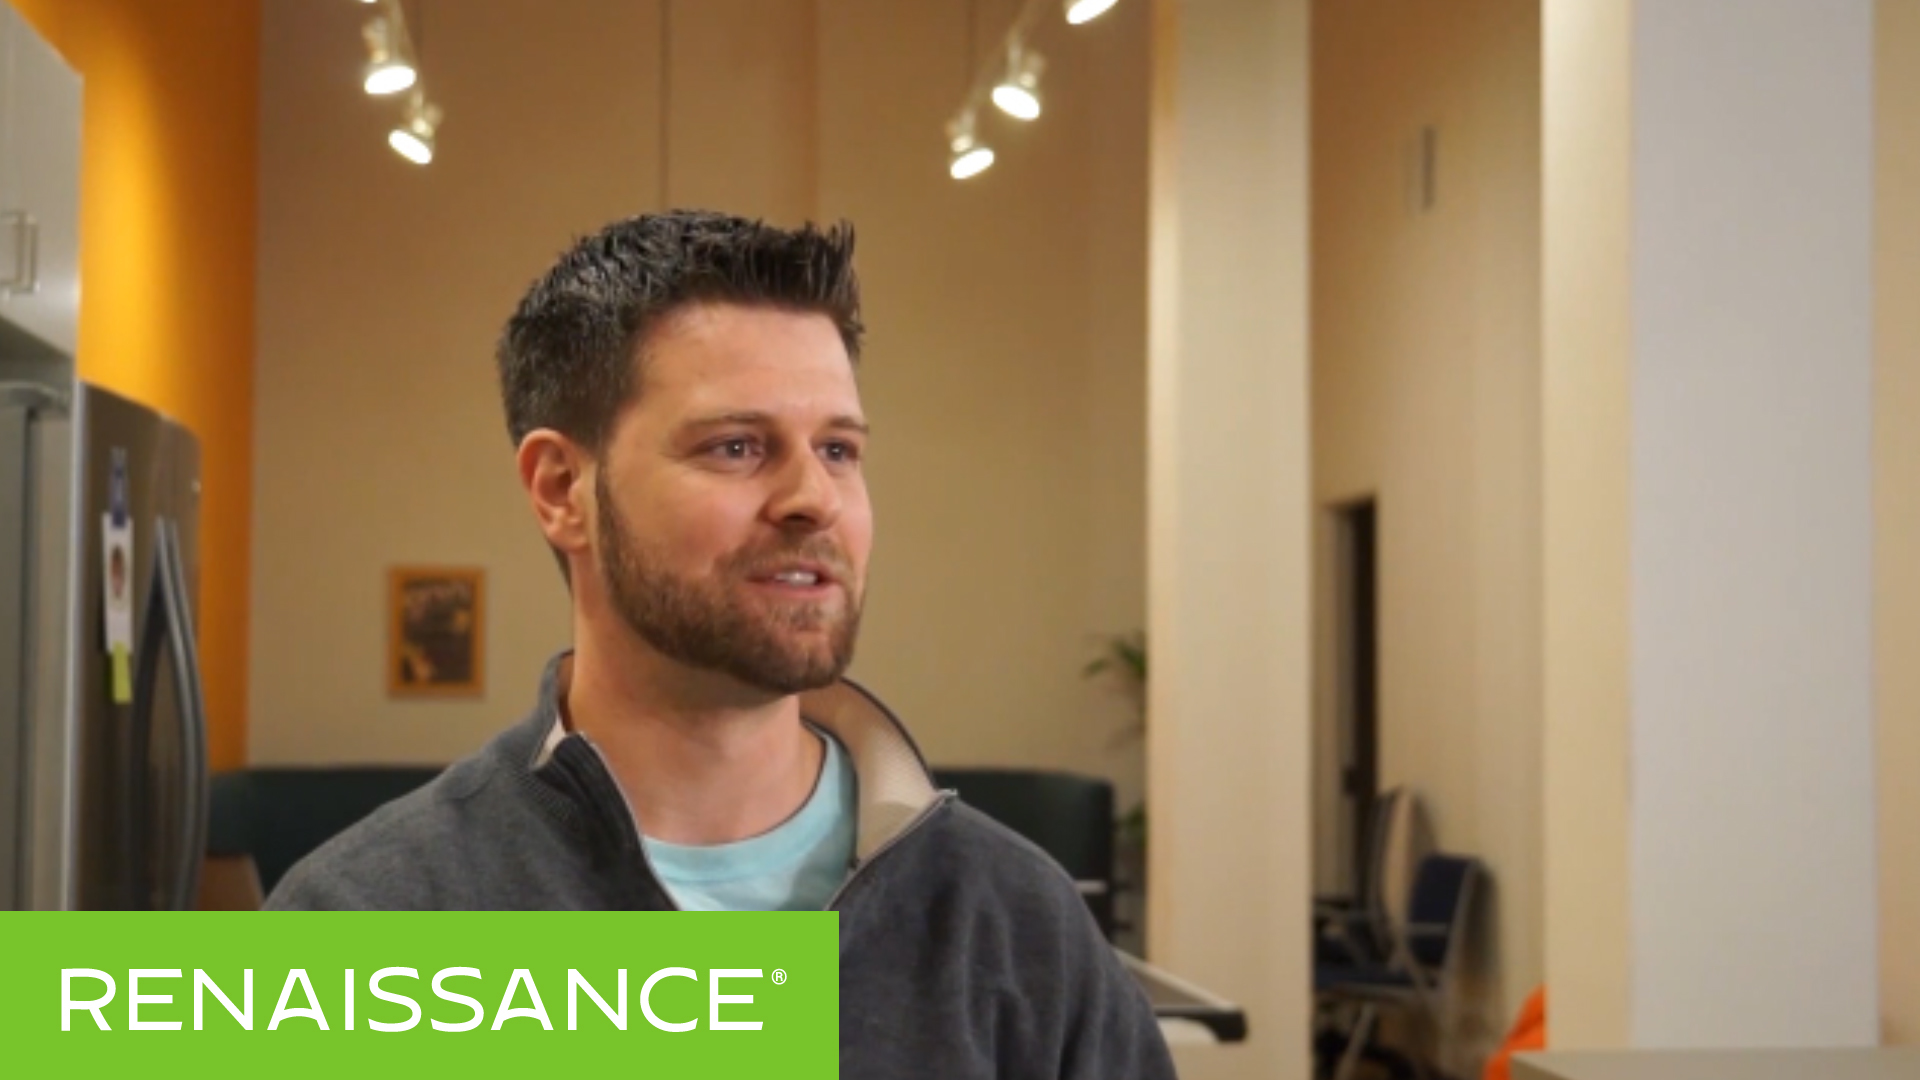 Renaissance Learning is a Lean and Agile Software Development Company